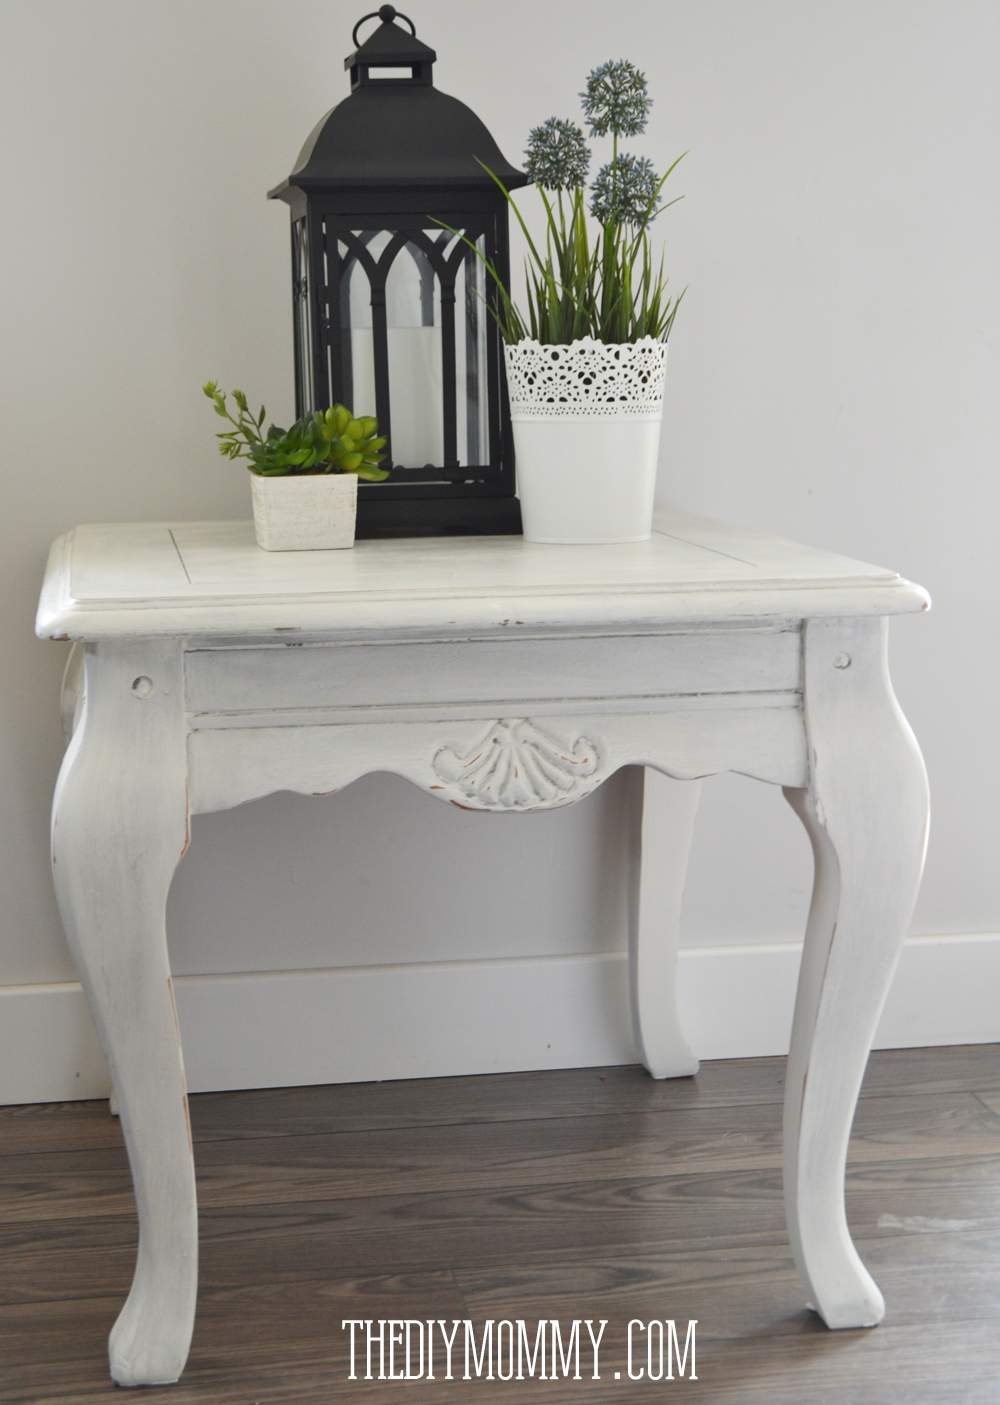 diy end tables that look stylish and unique chalk painted side table upcycled accent pottery barn bedroom furniture west elm beach style floor lamps patio wooden bedside designs